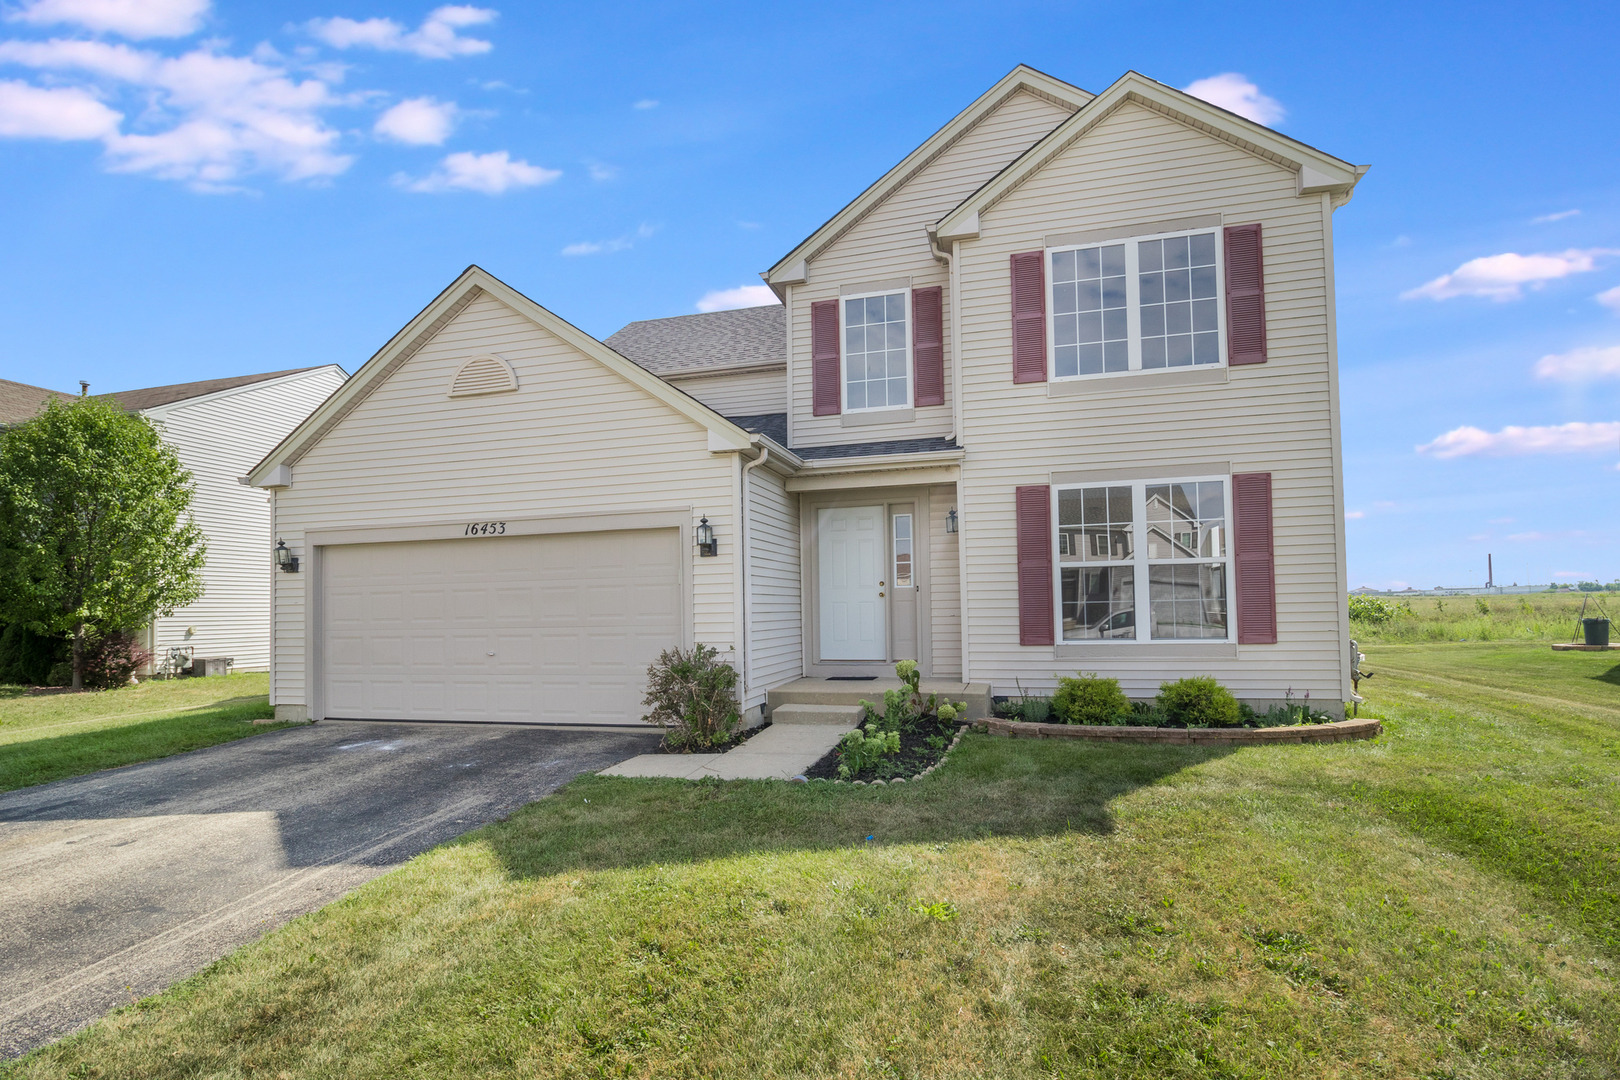 """UNBELIEVABLE OPPORTUNITY IN THE FIELDS OF LONGMEADOW. YARD BACKS UP TO PRAIRIE BLUFF PRESERVE! OVER 2,300SF 3 BEDROOM, 2 FULL BATHS AND 2 HALF BATHS THAT'S READY FOR NEW OWNERS. REDESIGNED KITCHEN IN 2019 W/2-TONED SHAKER CABINETS. WHITE  42"""" UPPER CABINETS/GRAY LOWERS INCLUDING PULL-OUT DRAWERS. WHITE SUBWAY TILE/STAINLESS STEEL APPLIANCES/GRANITE COUNTERTOPS & WALK-IN PANTRY. NEWER ARCHITECTURAL FLOORING ON MAIN LEVEL. ALL BEDROOMS ARE LOCATED ON THE 2ND FLOOR ALONG WITH LOFT OVERLOOKING THE 2-STORY LIVING ROOM. 17X14 MASTER BEDROOM OFFERS EASTERN EXPOSURES ALONG WITH WALK-IN CUSTOM CLOSET & PRIVATE BATH WITH DUAL VANITIES AND SEPARATE SOAKER TUB/STAND-UP SHOWER. FULL, FINISHED BASEMENT OFFERS EXTRA ENTERTAINING SPACE AND A 1/2 BATH. PRIVATE YARD FOR PARTIES INCLUDES STAMPED CONCRETE. ROOF AND AC ARE NEWER. HURRY NOW, BEFORE THIS ONE IS GONE."""